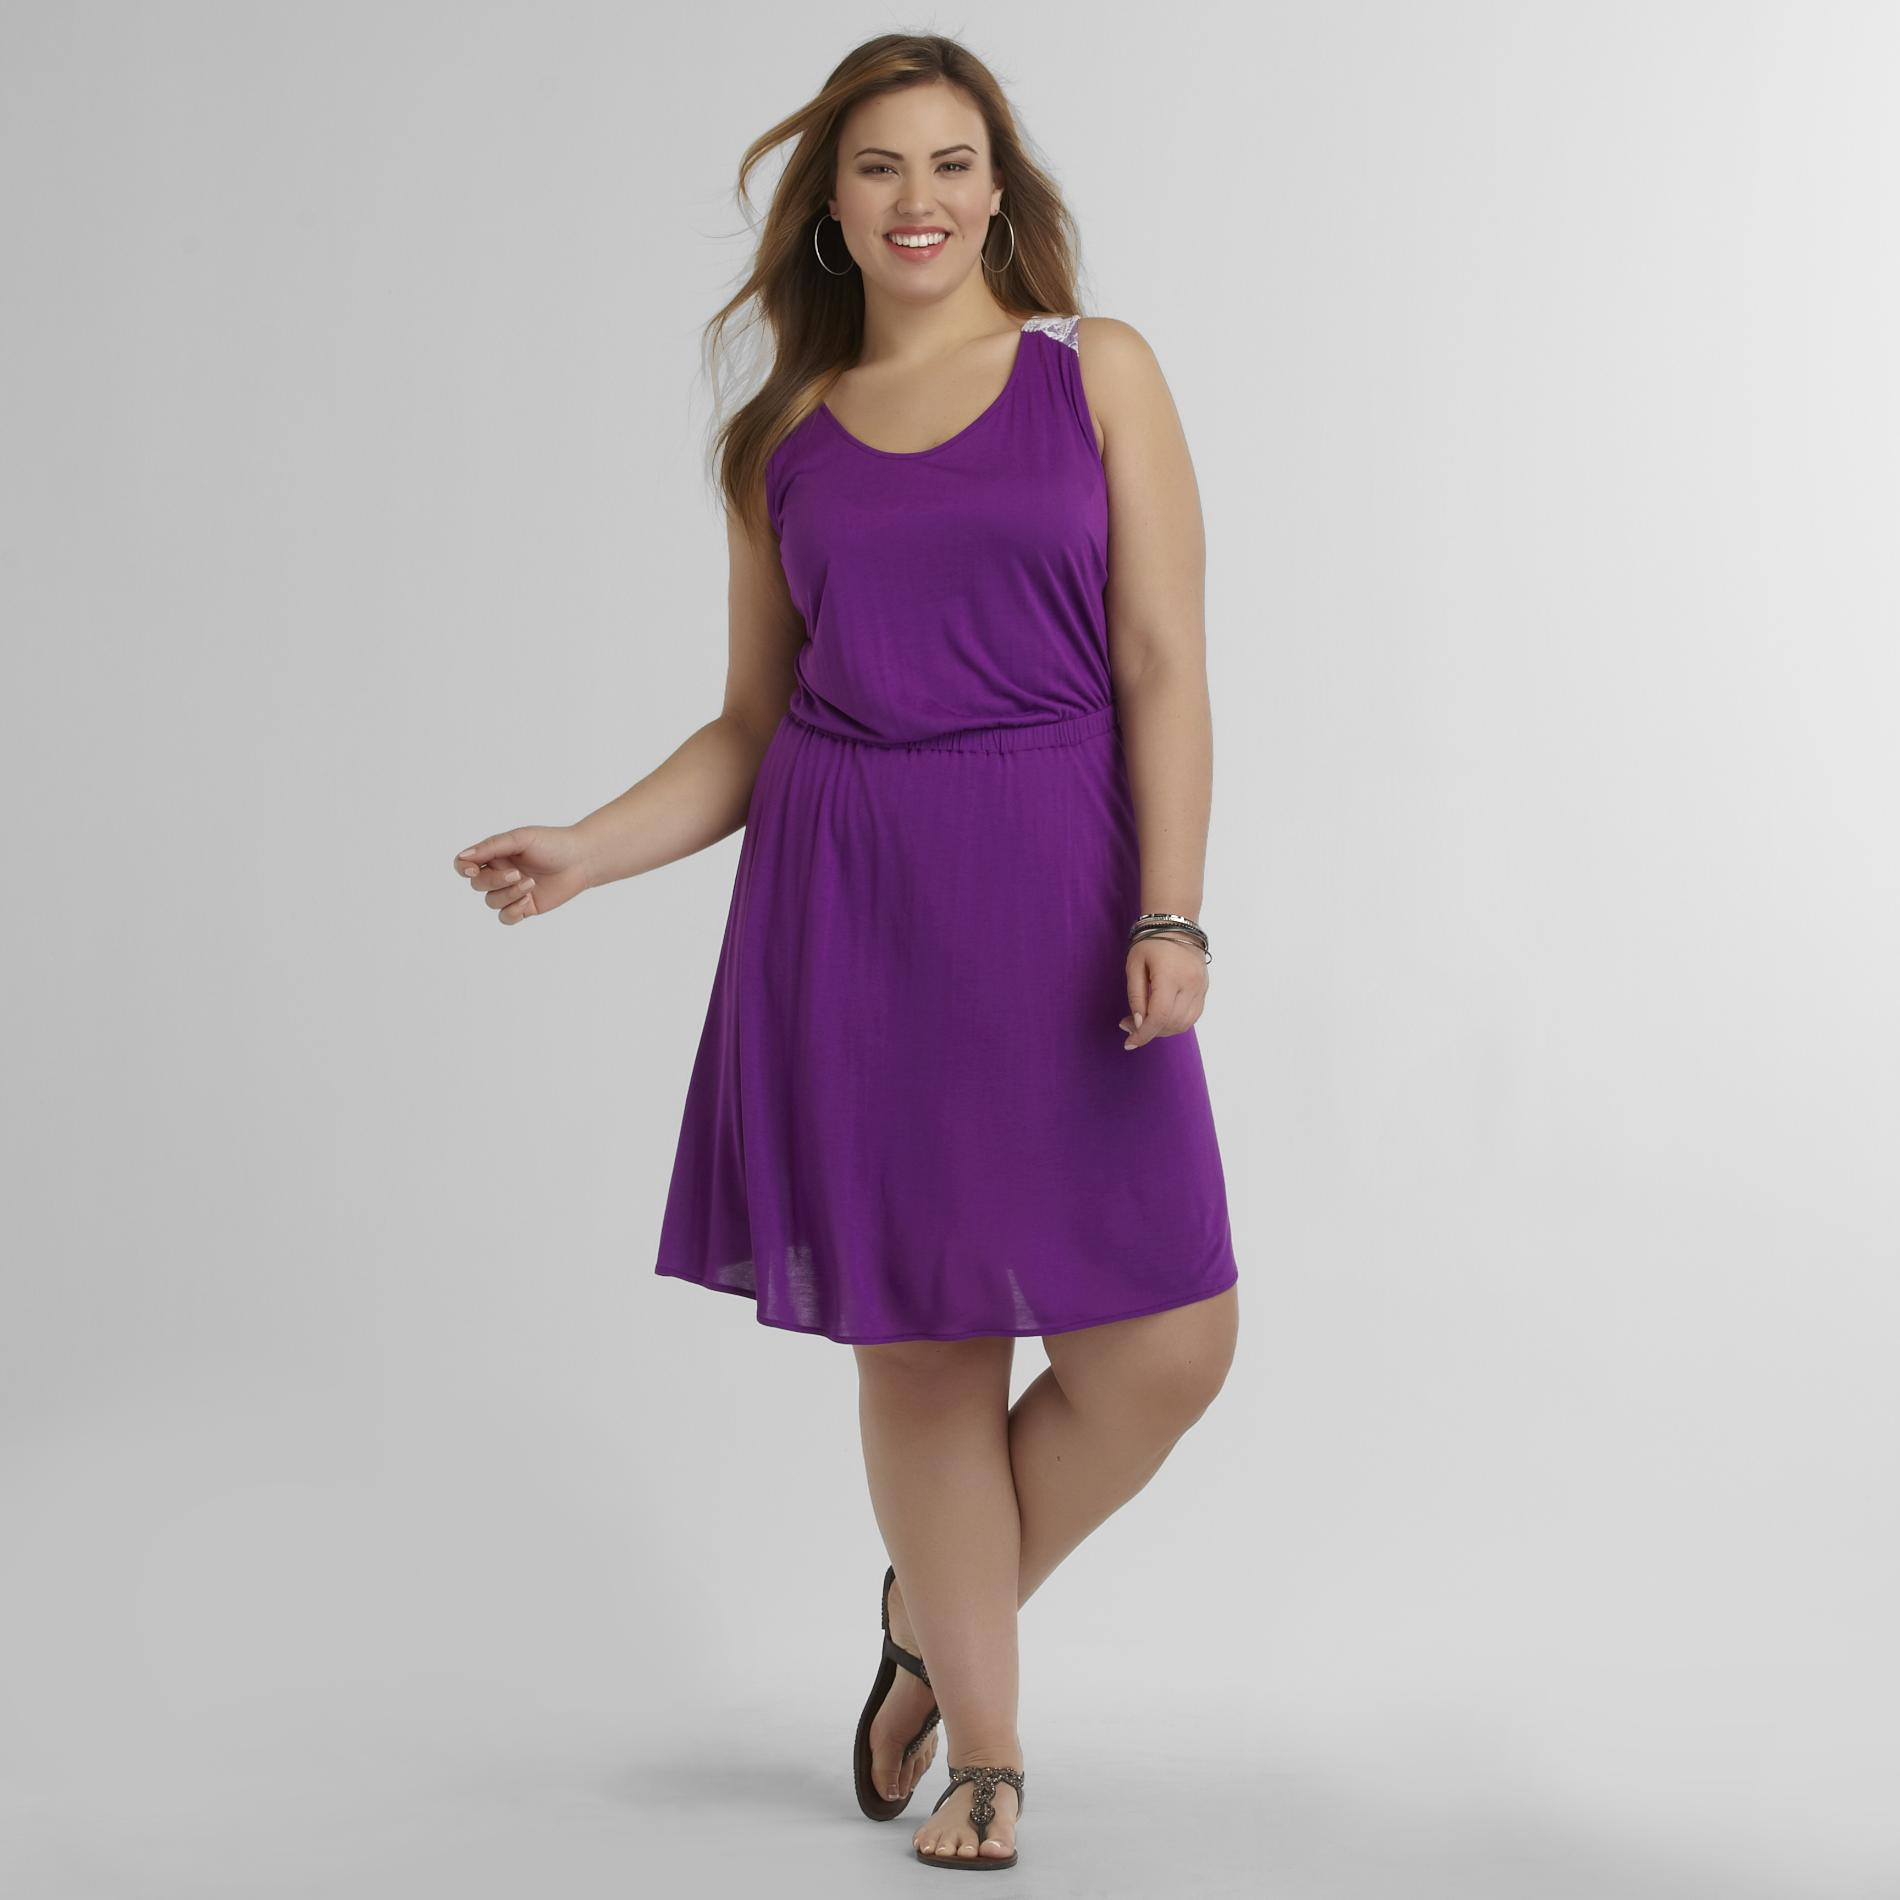 Love Your Style, Love Your Size Women's Plus Lace Back Tank Dress at Kmart.com